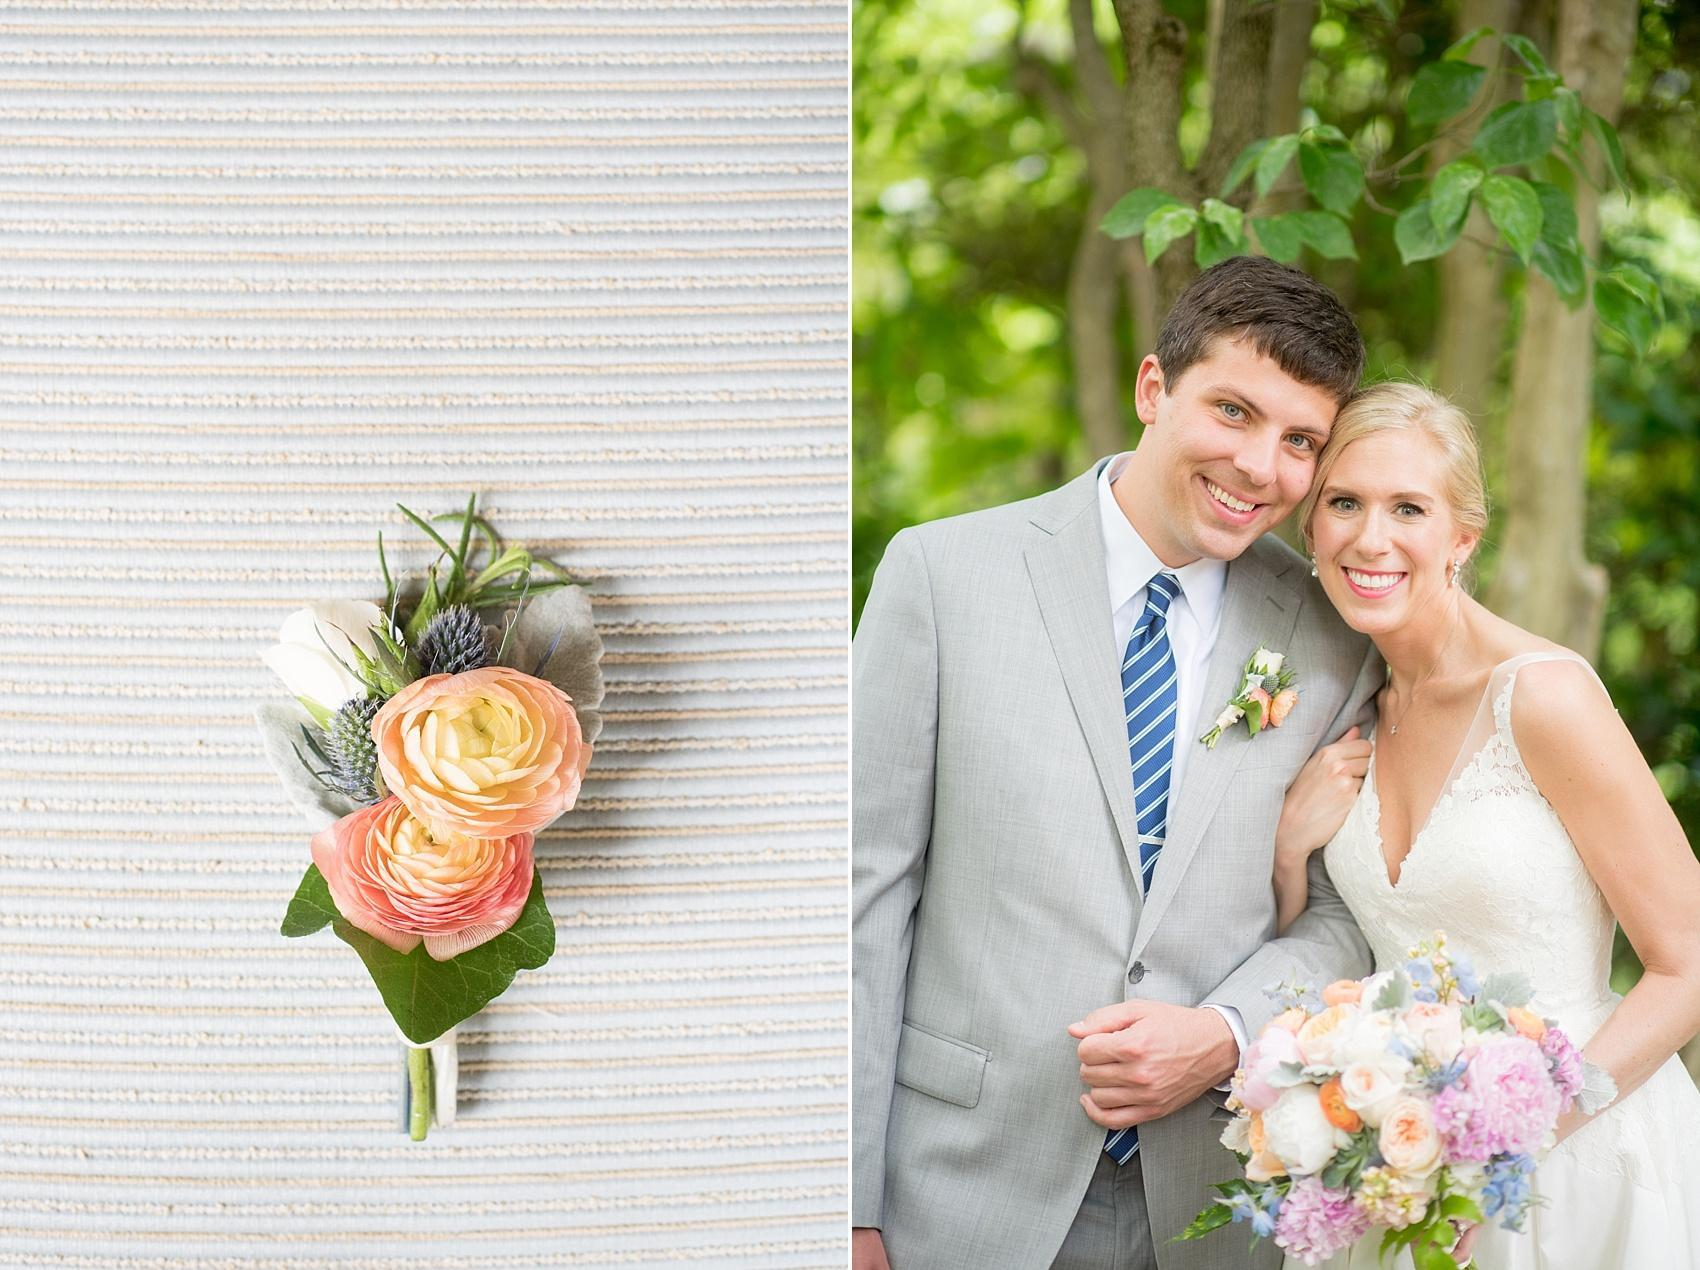 Mikkel Paige Photography photos of a downtown Raleigh Market Hall wedding with spring pictures of the bride and groom and orange ranunculus boutonniere by English Garden.